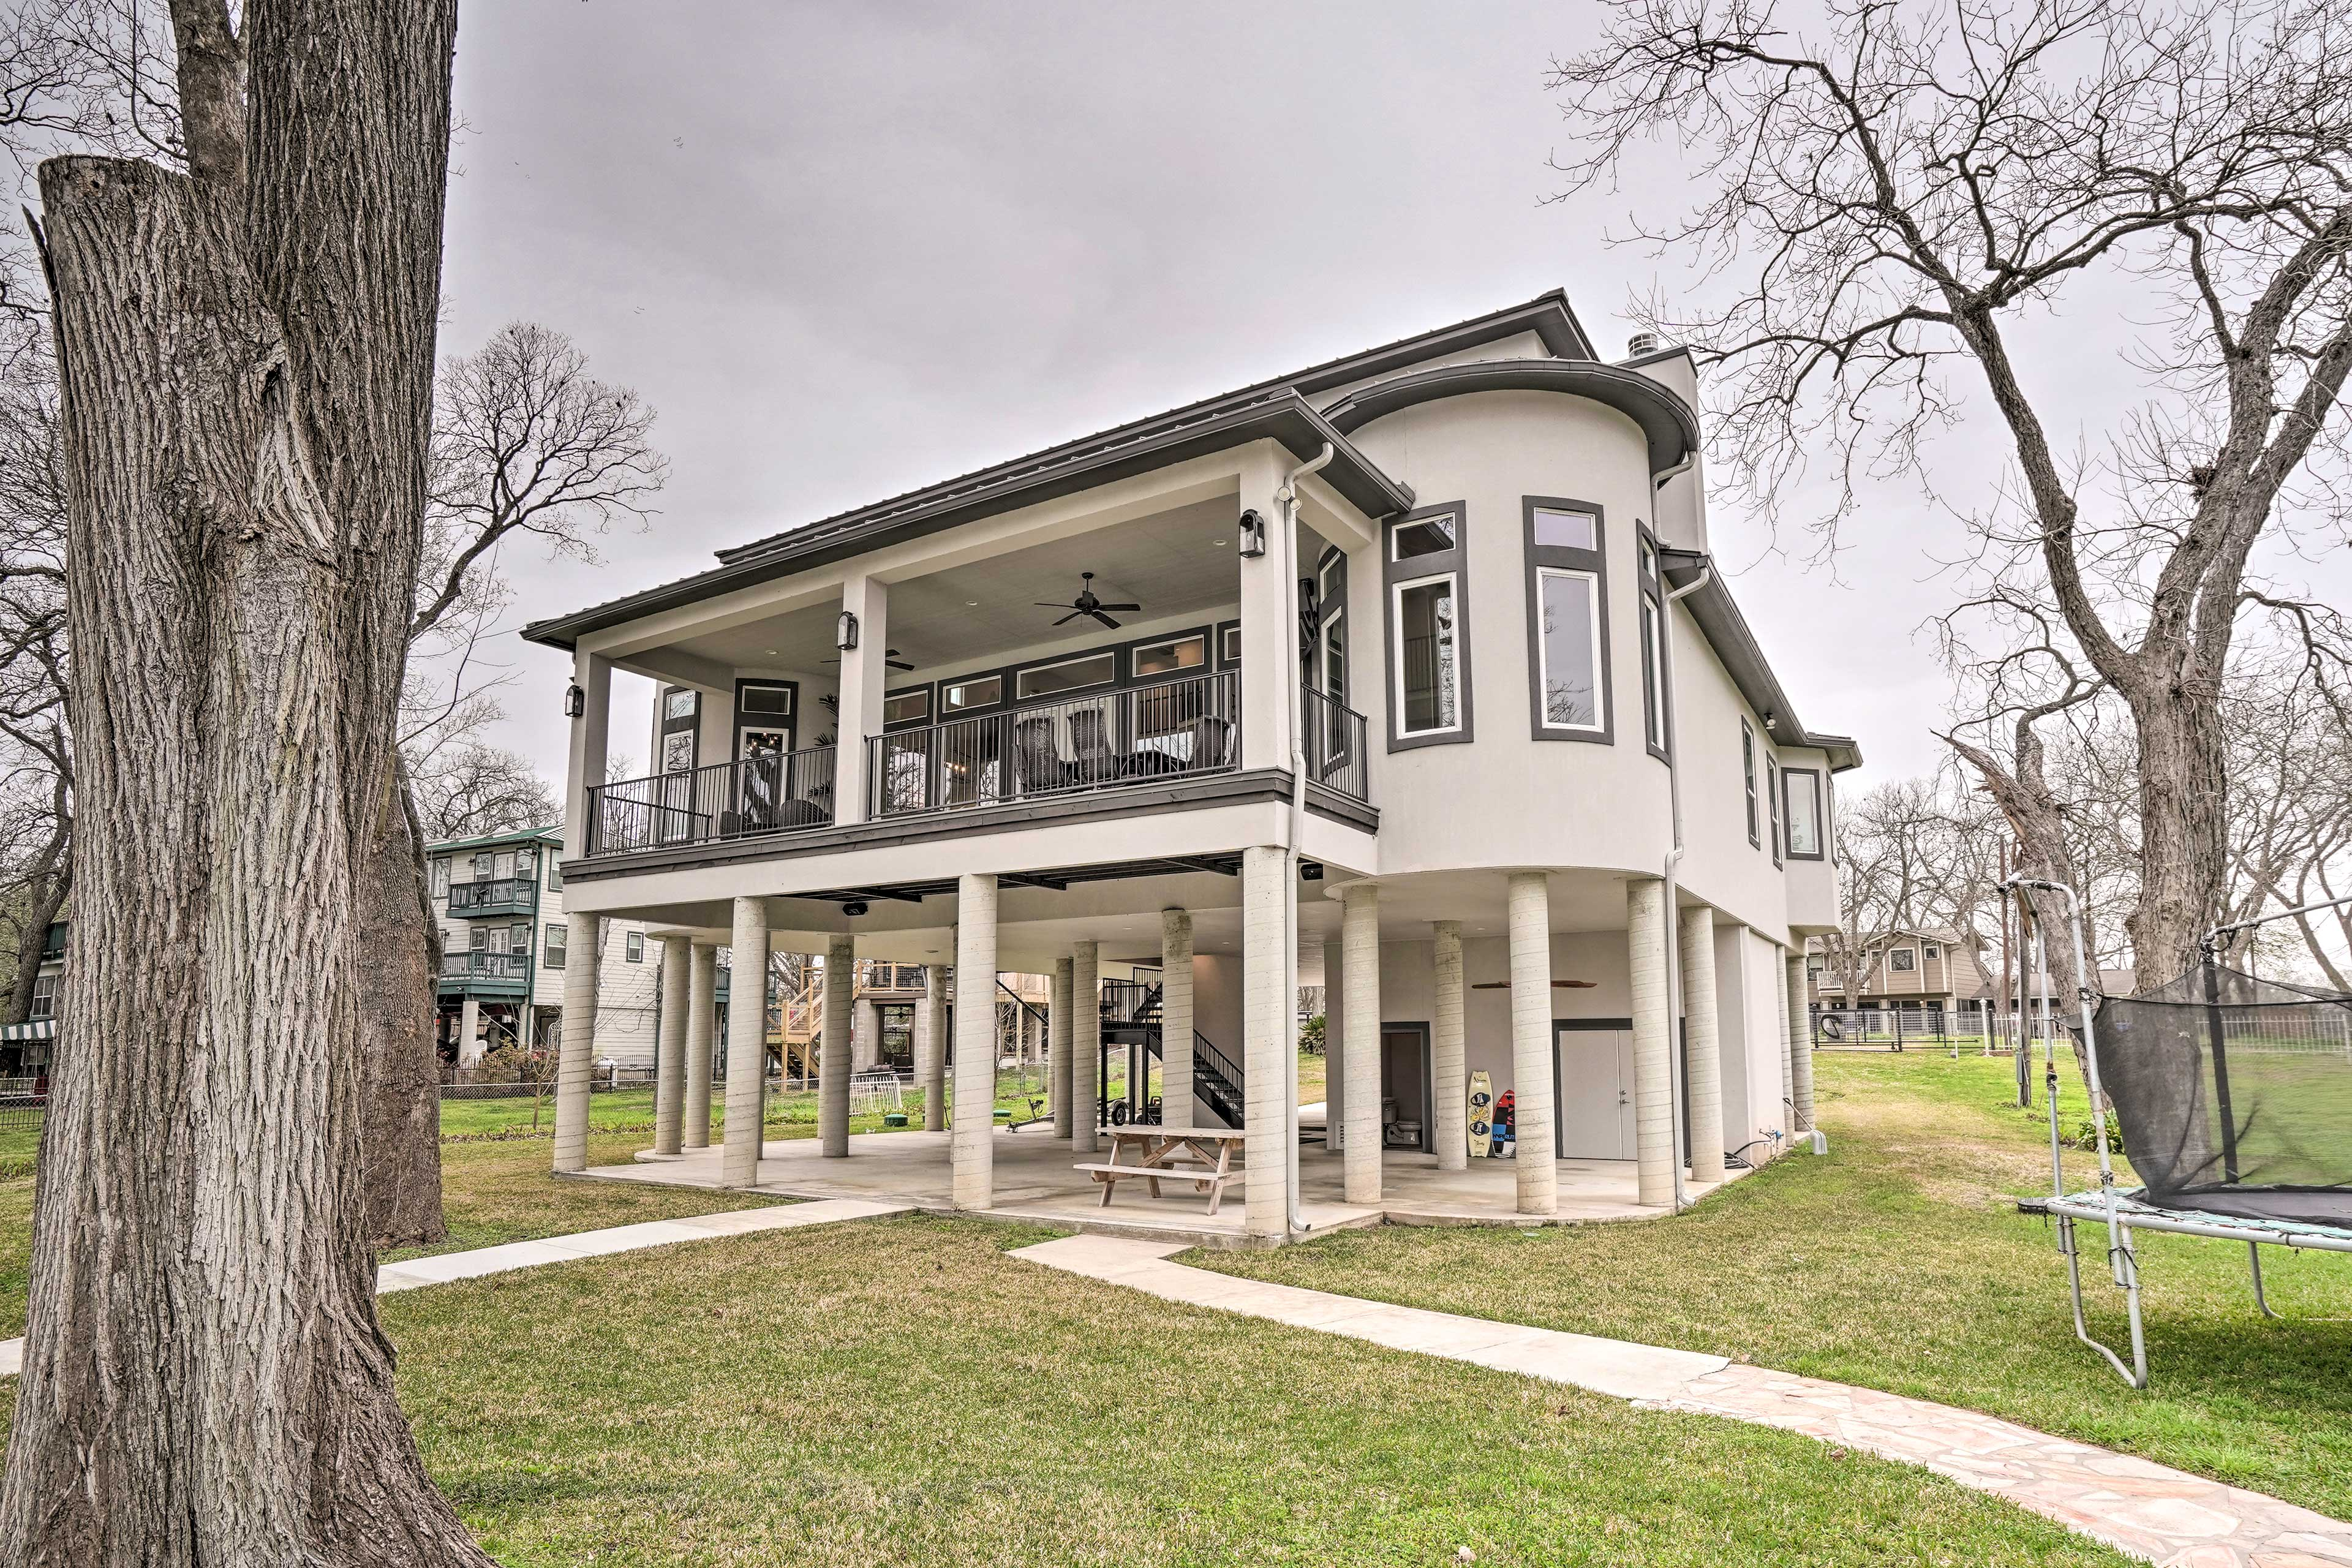 Book this Seguin home-away-from-home today for a trip you'll never forget.